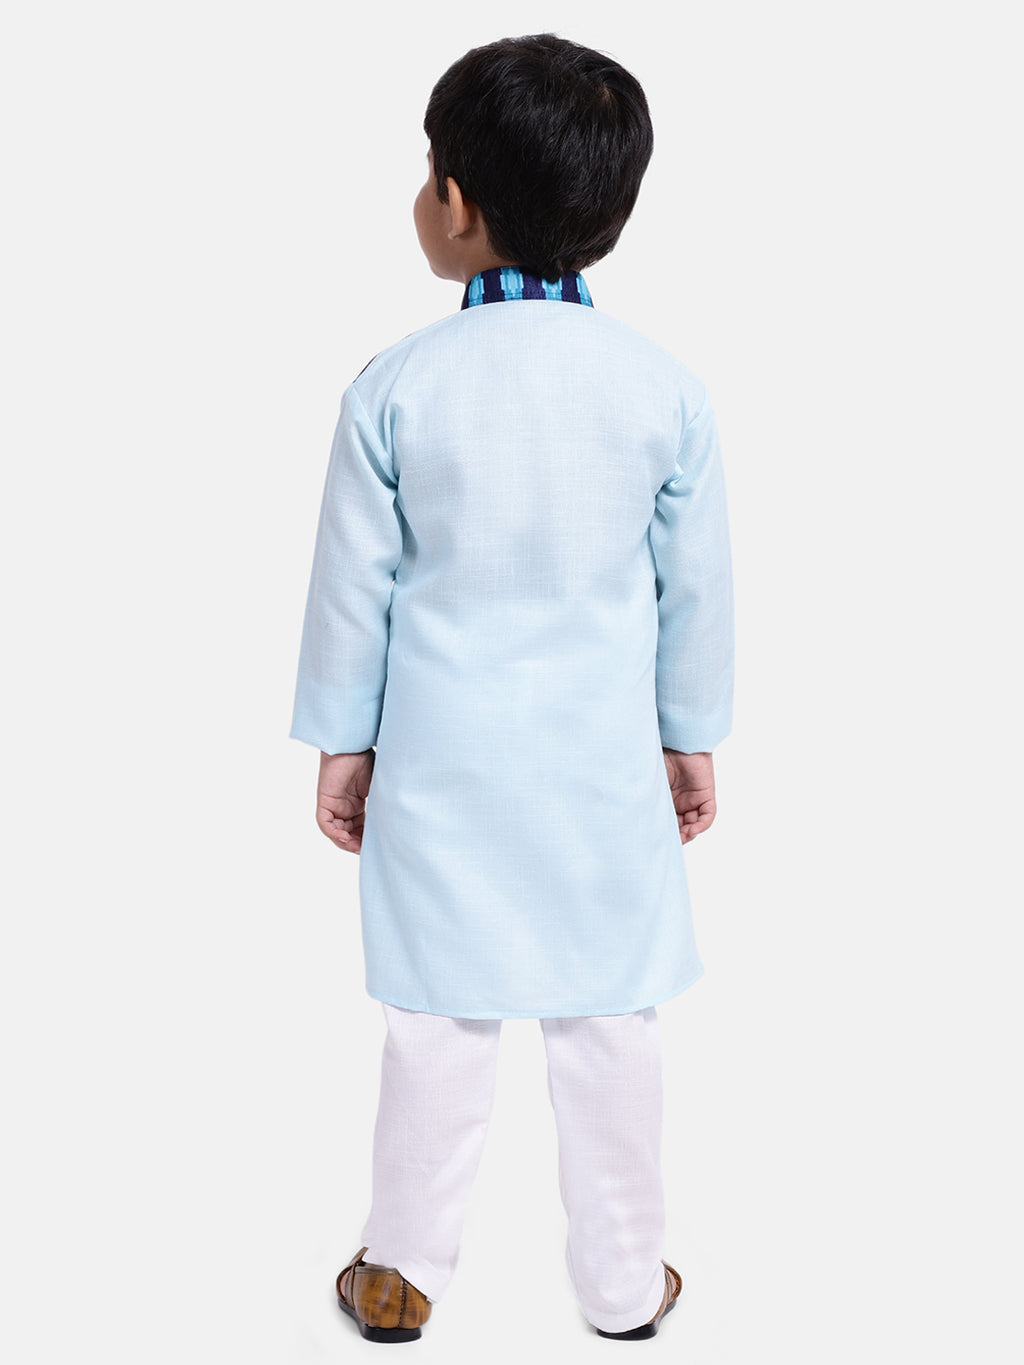 Attached Jacket Full Sleeve Kurta Pajama-Blue